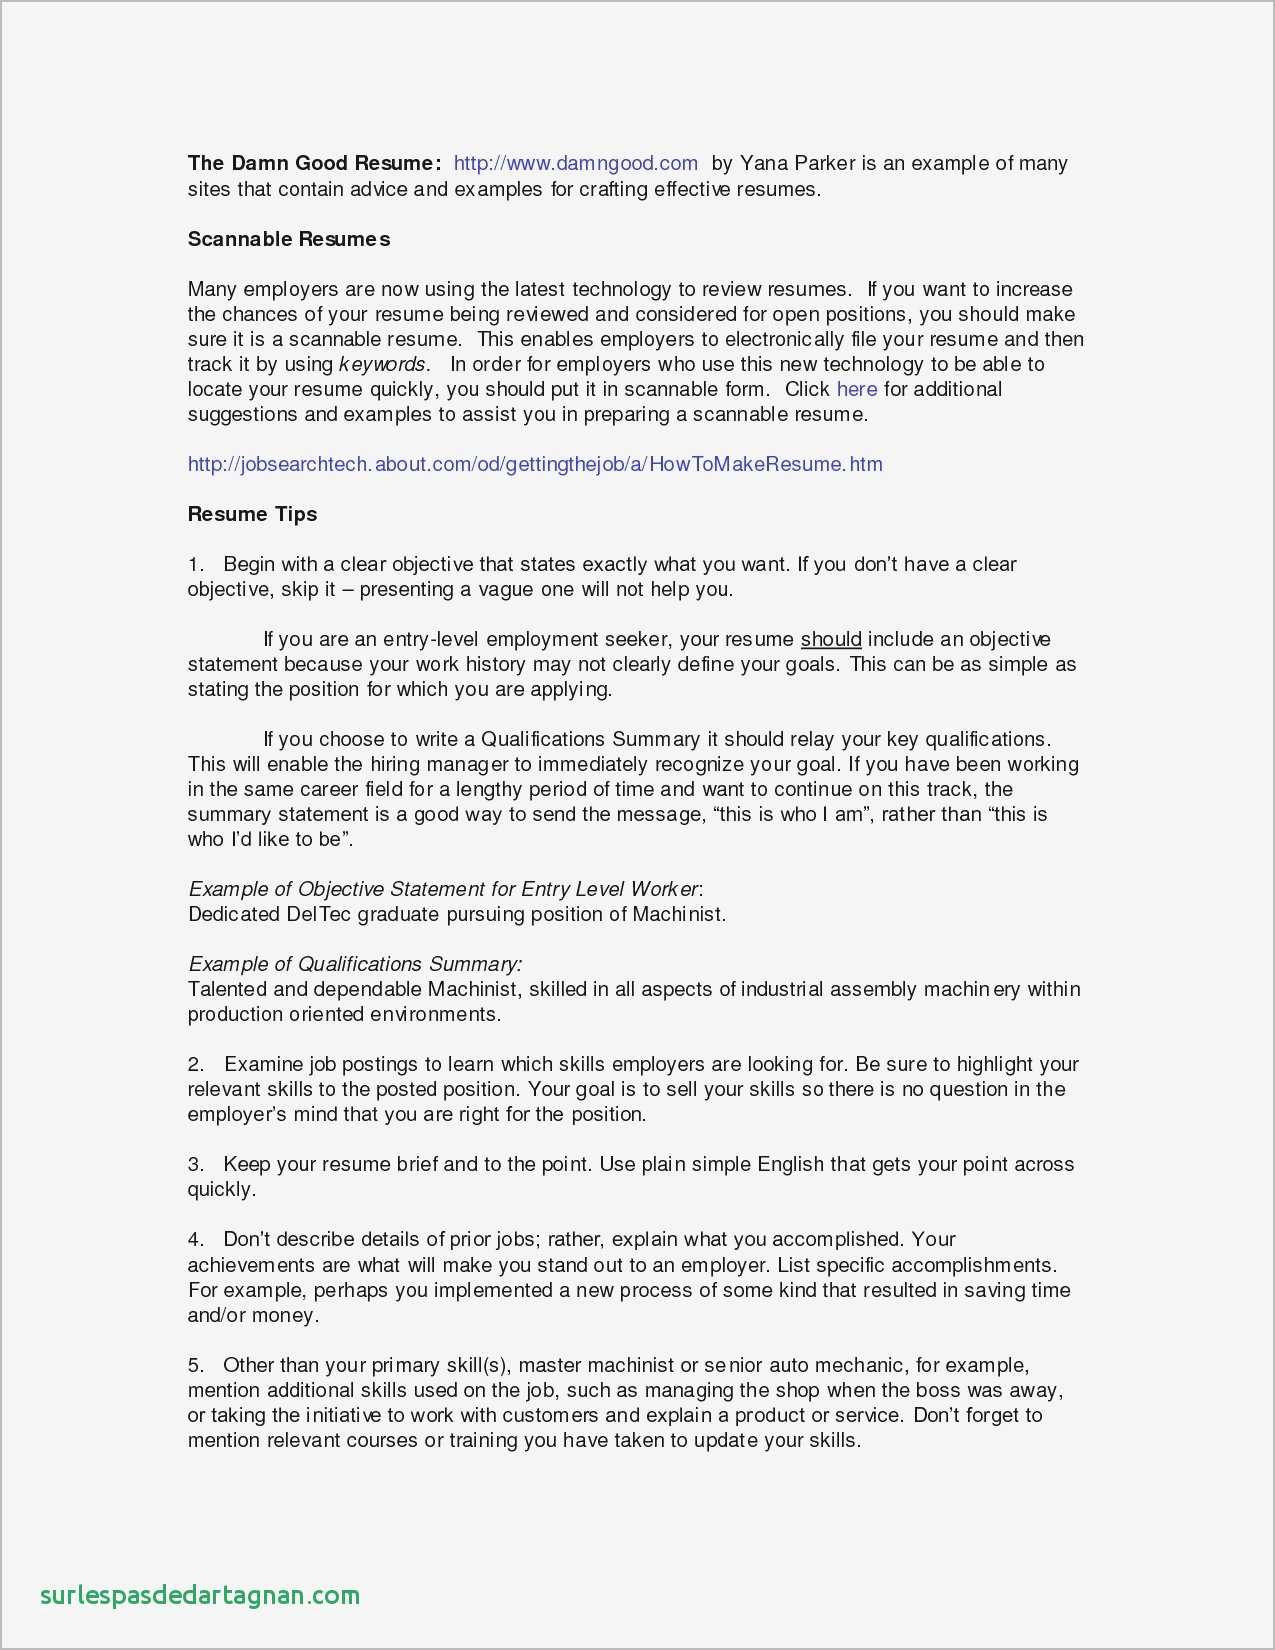 Resume for Graduate School Template - How to Write A Resume for Graduate School Popular School Resume